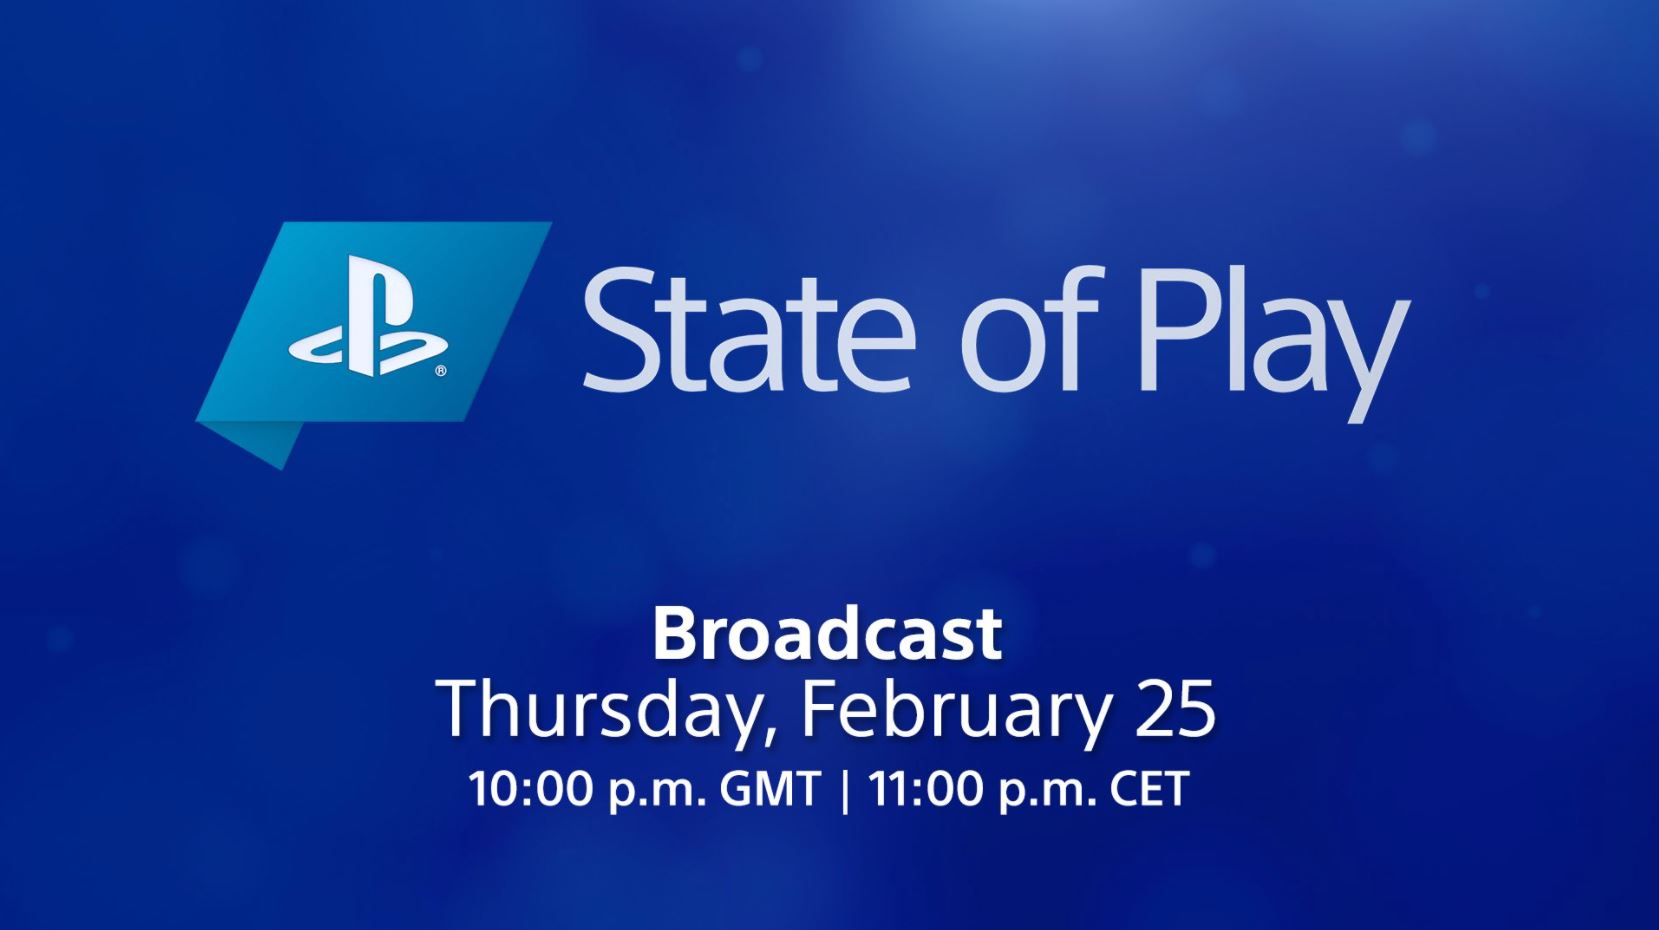 state-of-play-announced-for-thursday-with-deep-dives-on-ps5-and-ps4-games-30-minutes-long